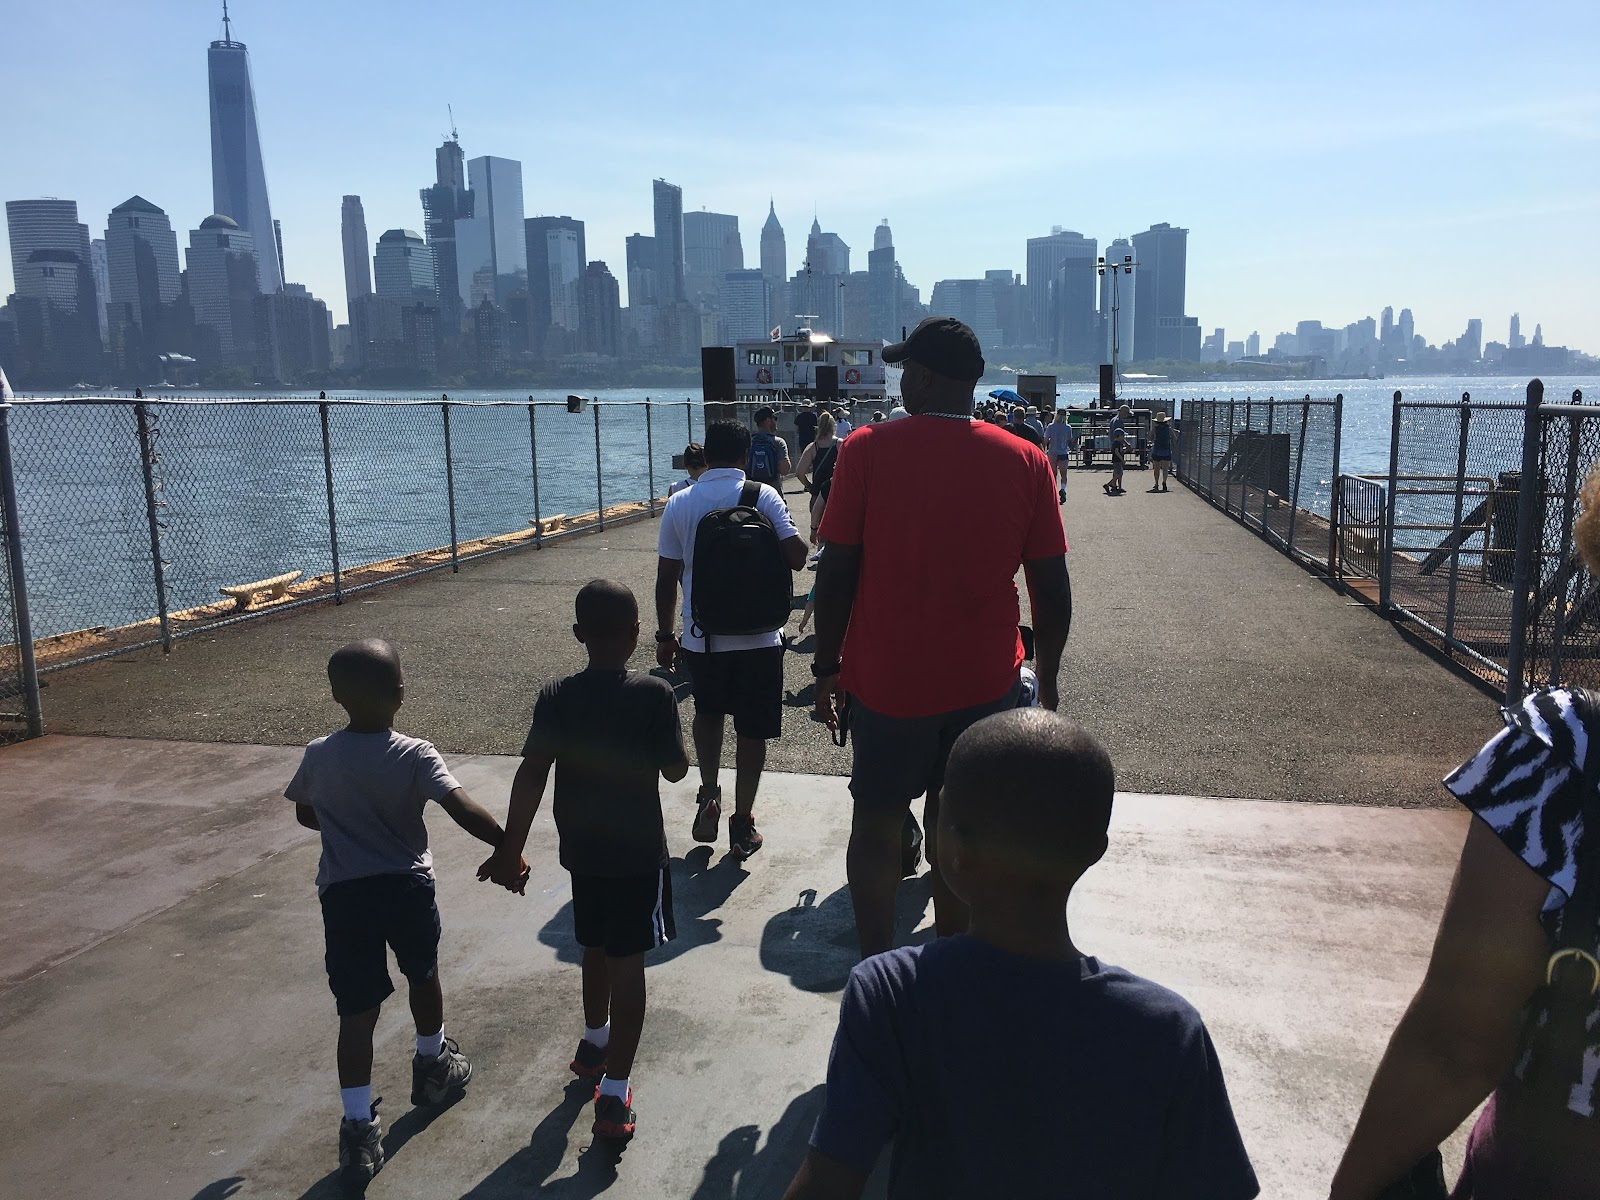 Family with three young boys walking on dock with NYC skyline in the background